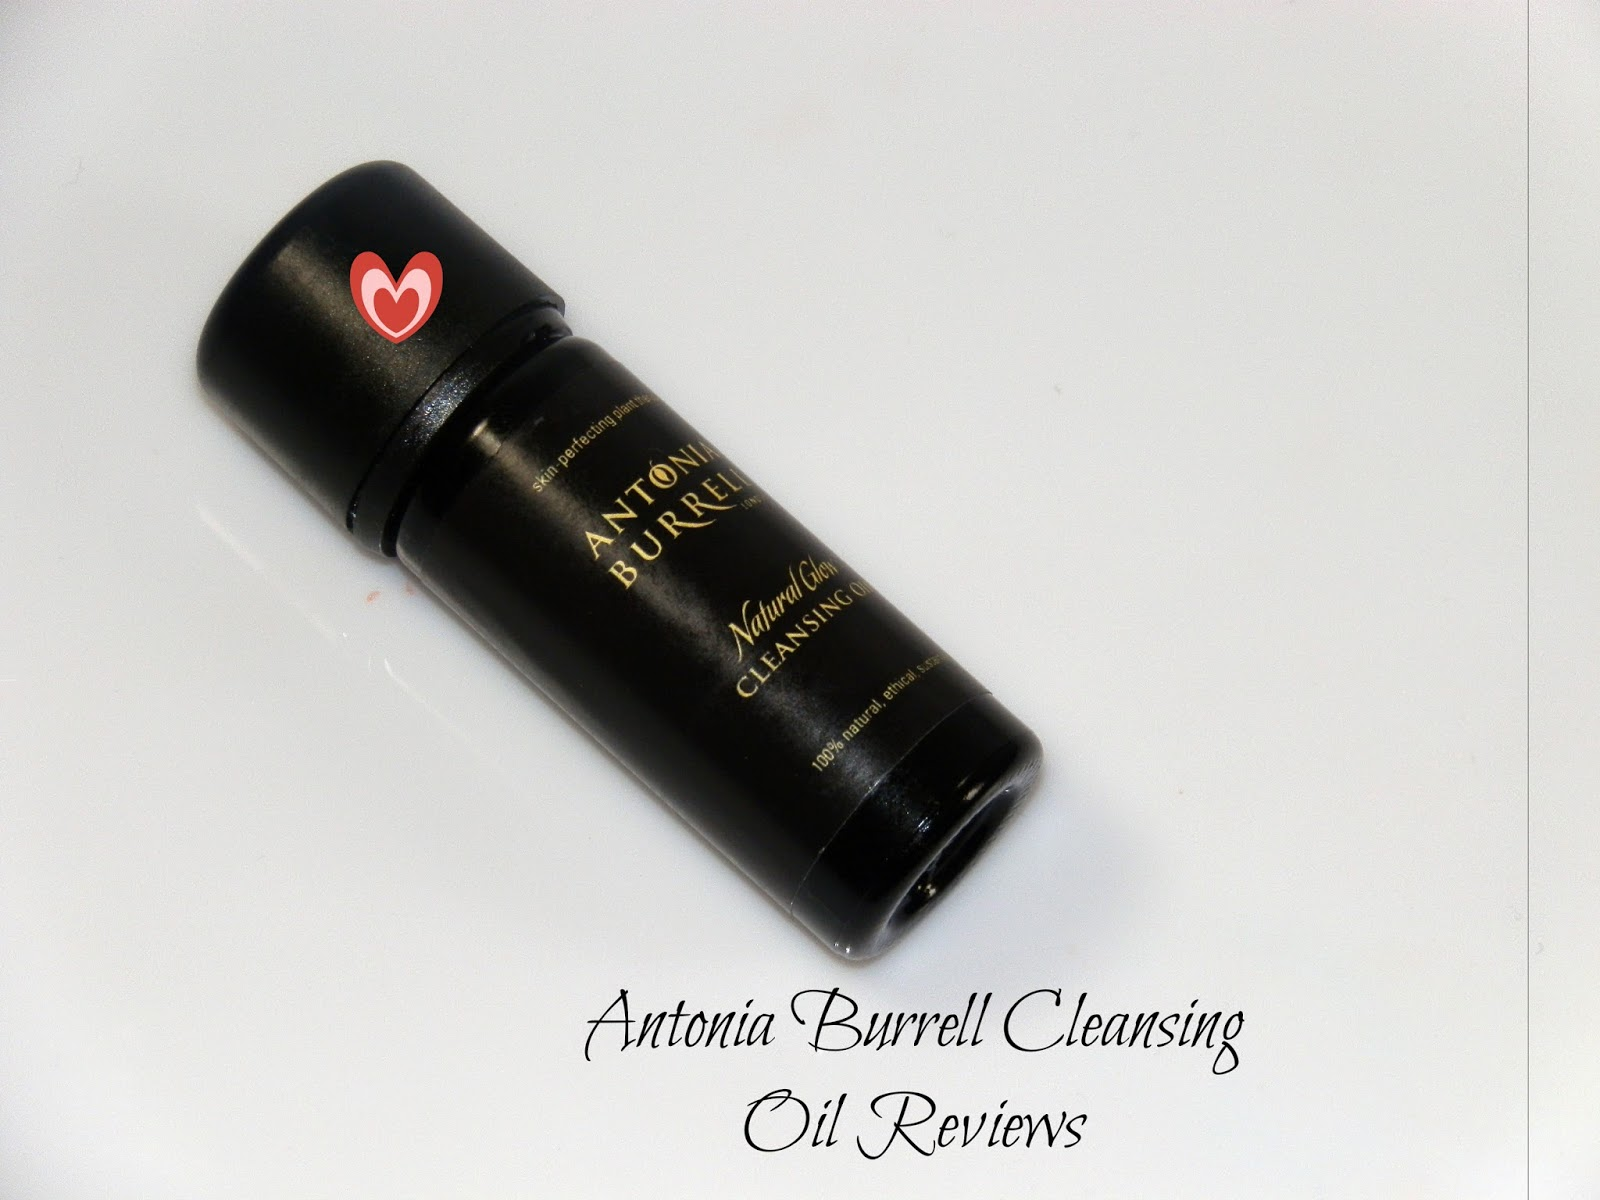 Antonia Burrell Cleansing Oil Reviews